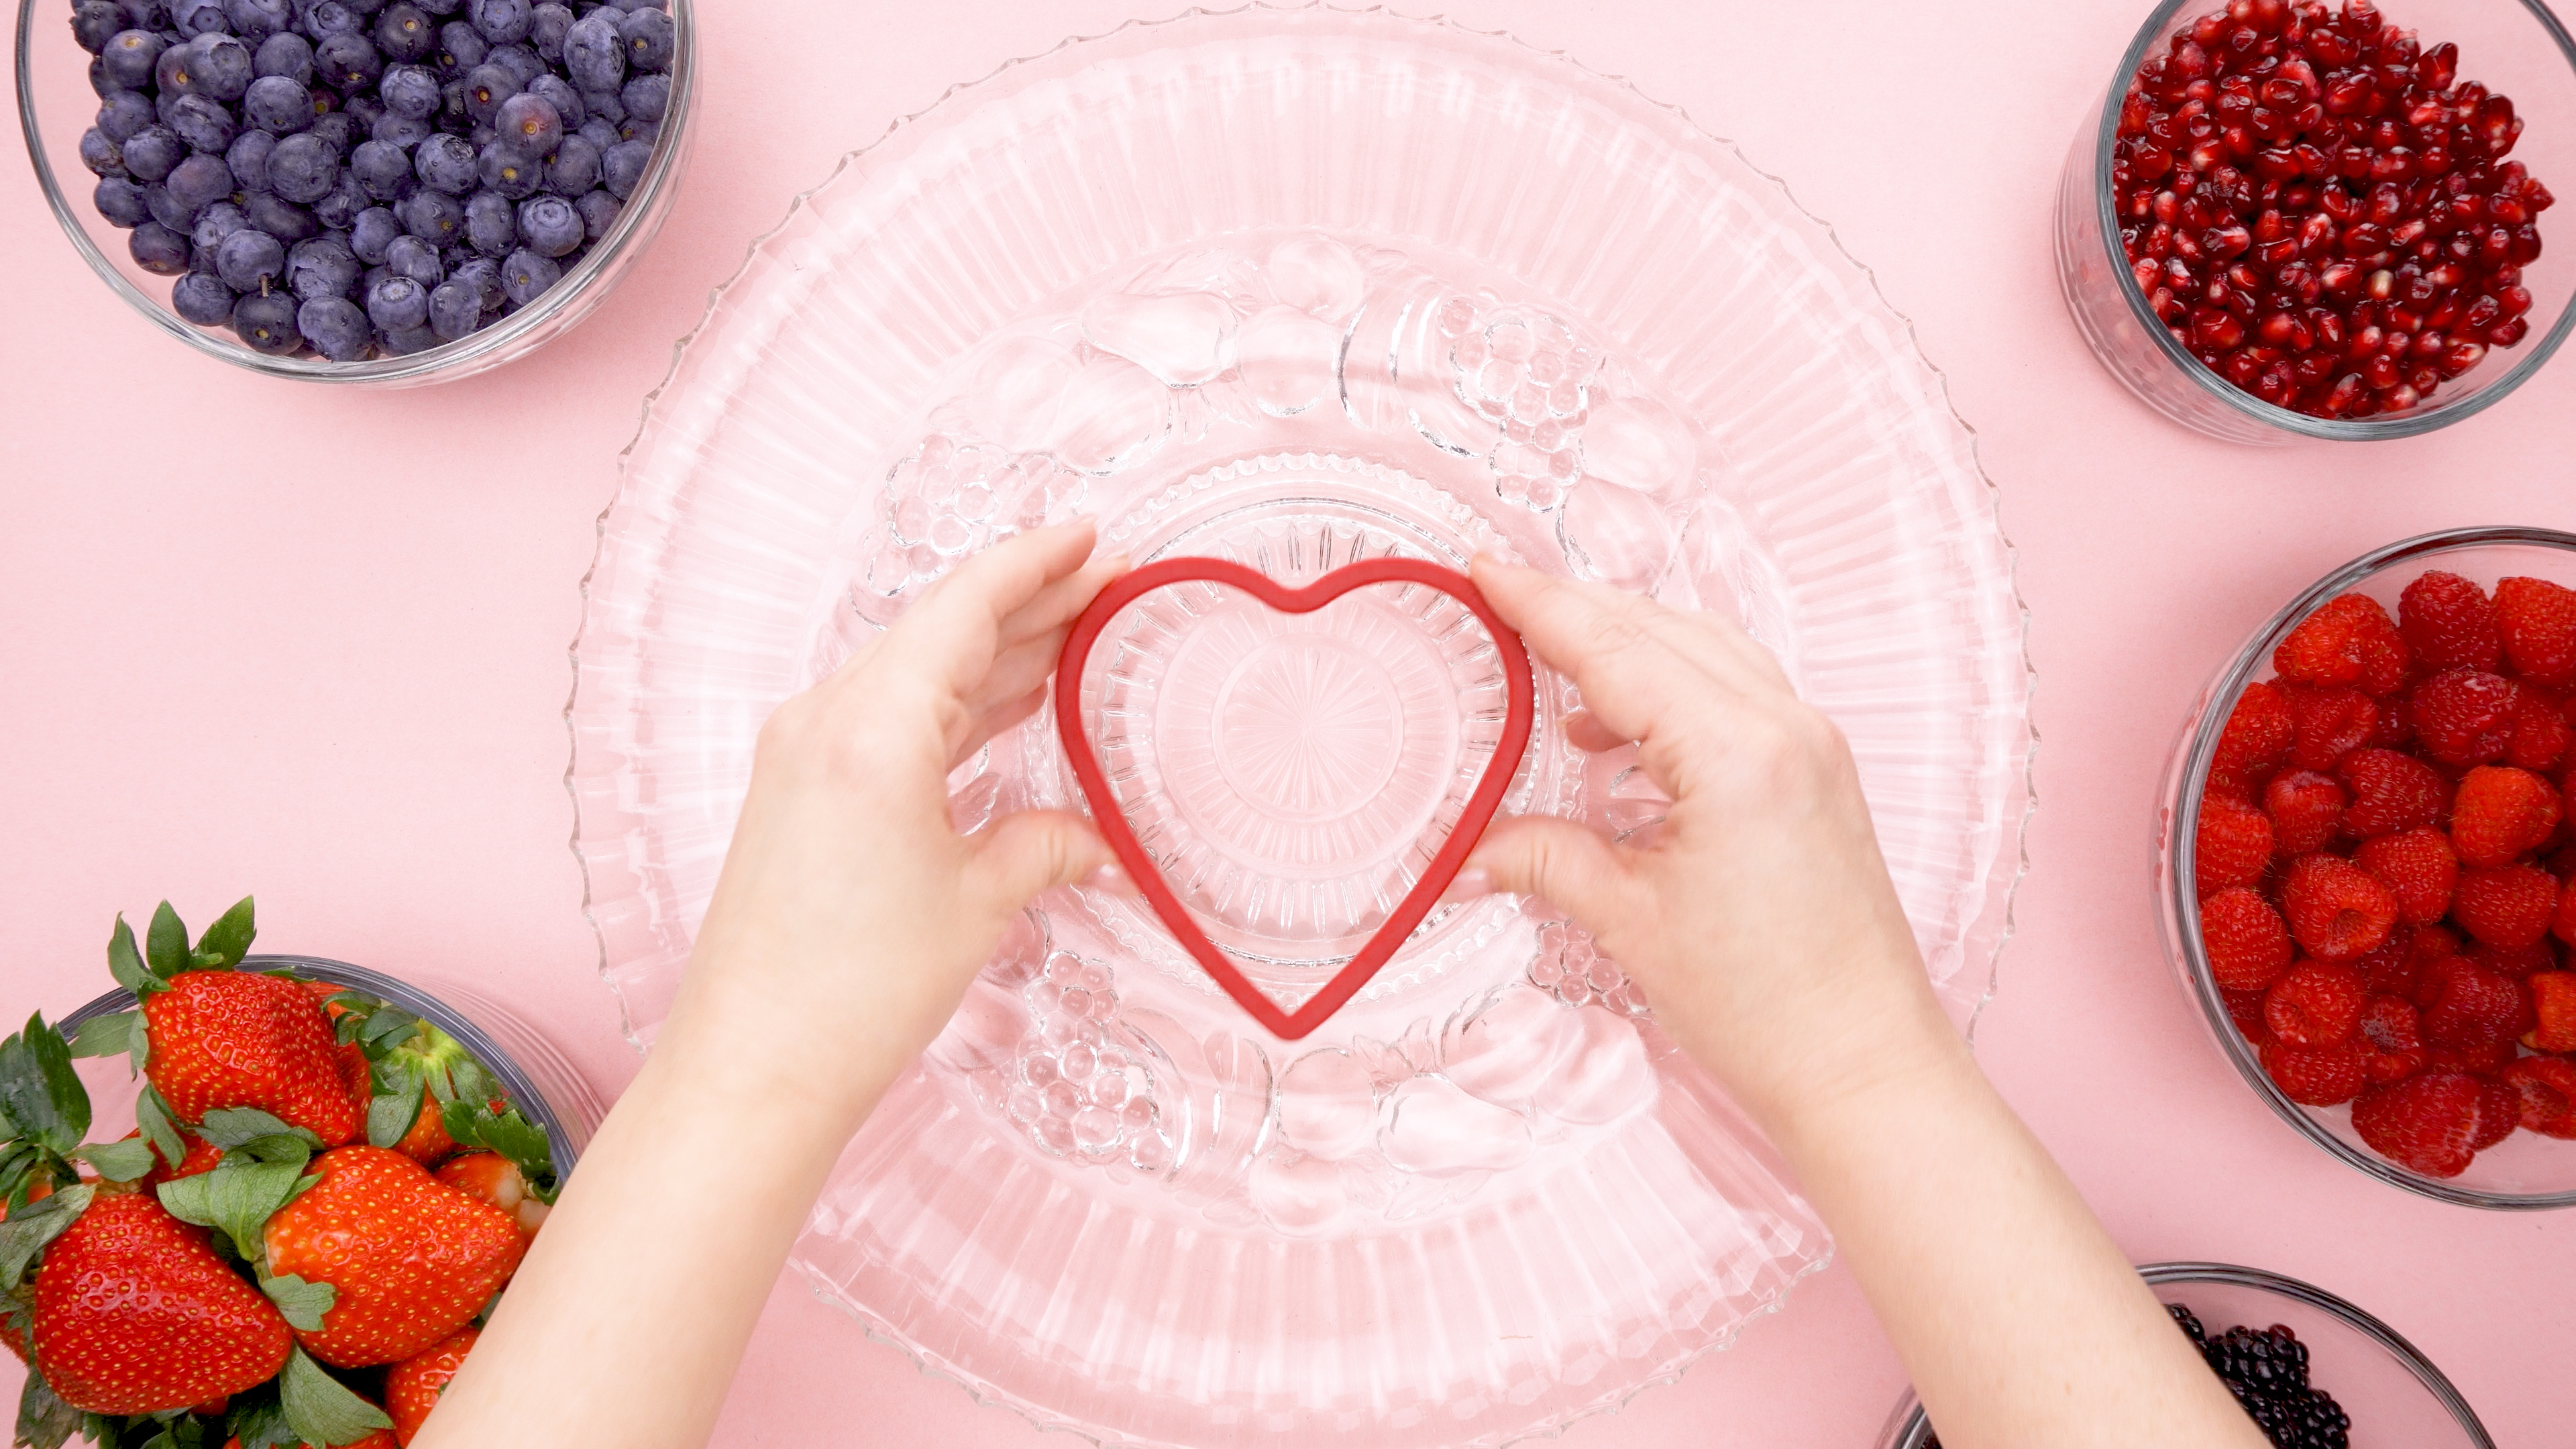 Heart Cookie Cutter for Fruit Tray